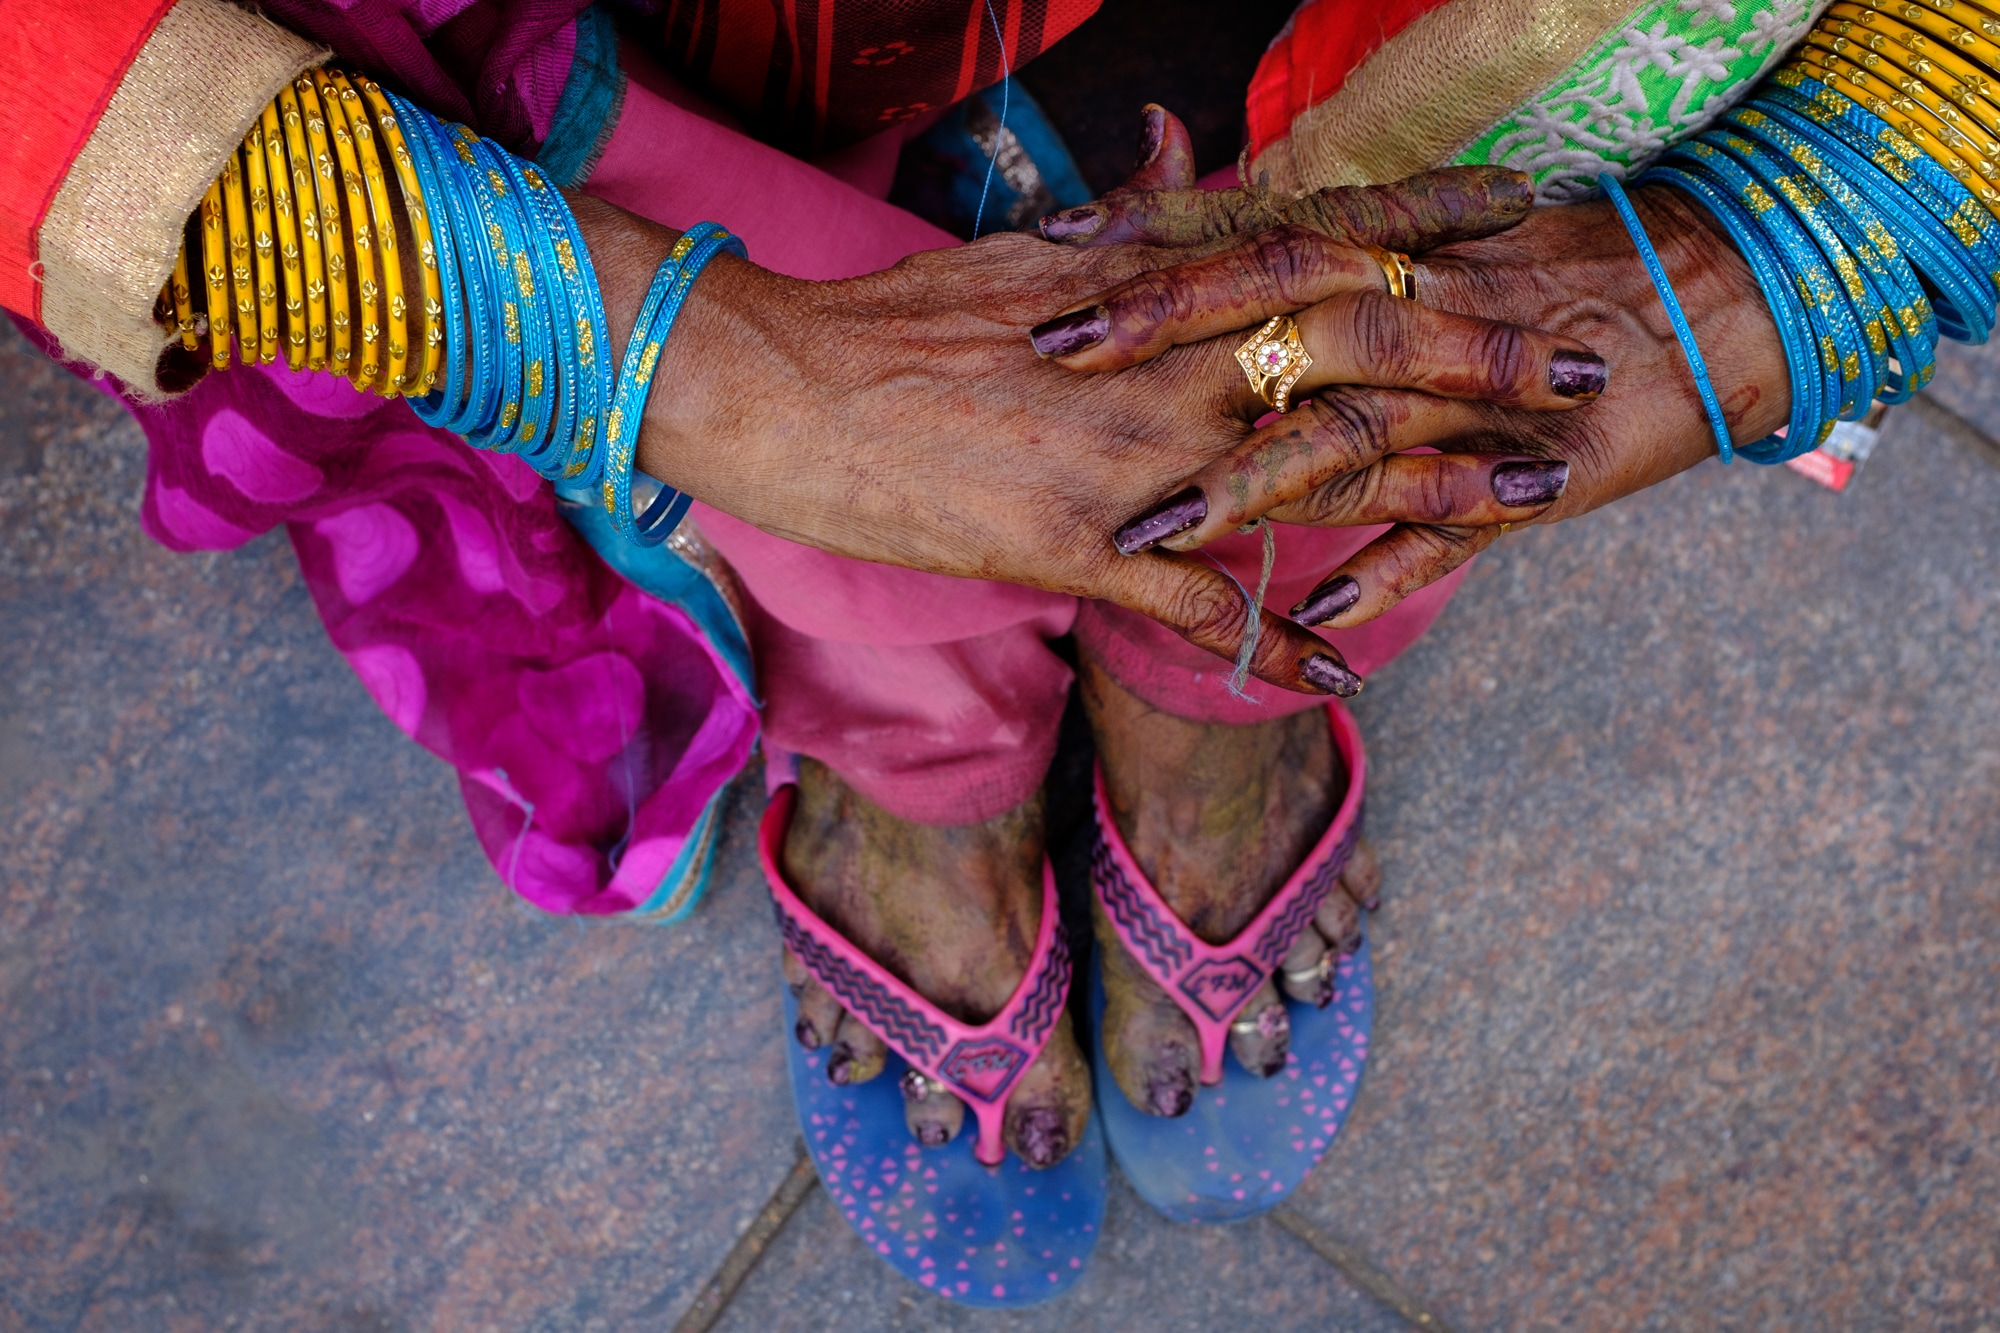 Henna-painted hands of a woman wearing colourful bangles. Ahmedabad.